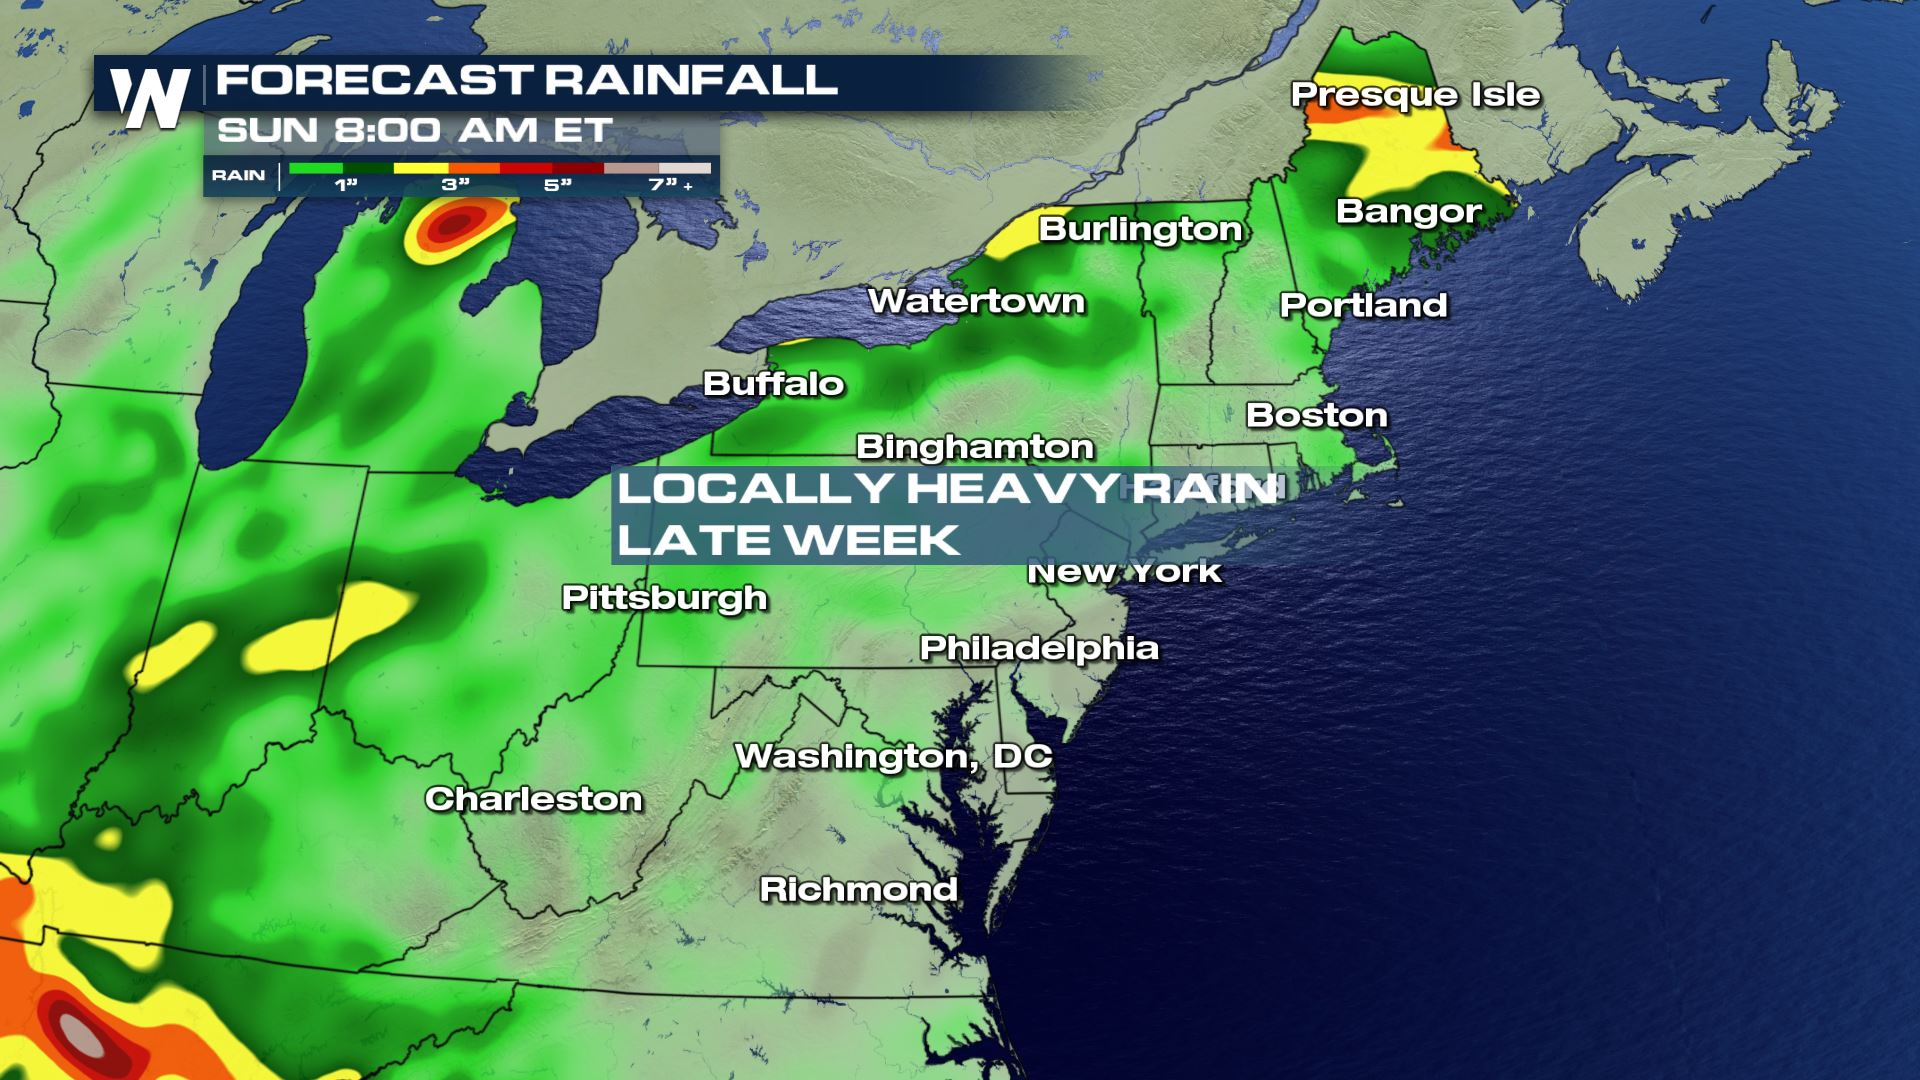 Break From Heavy Rain in Northeast, More Late Week